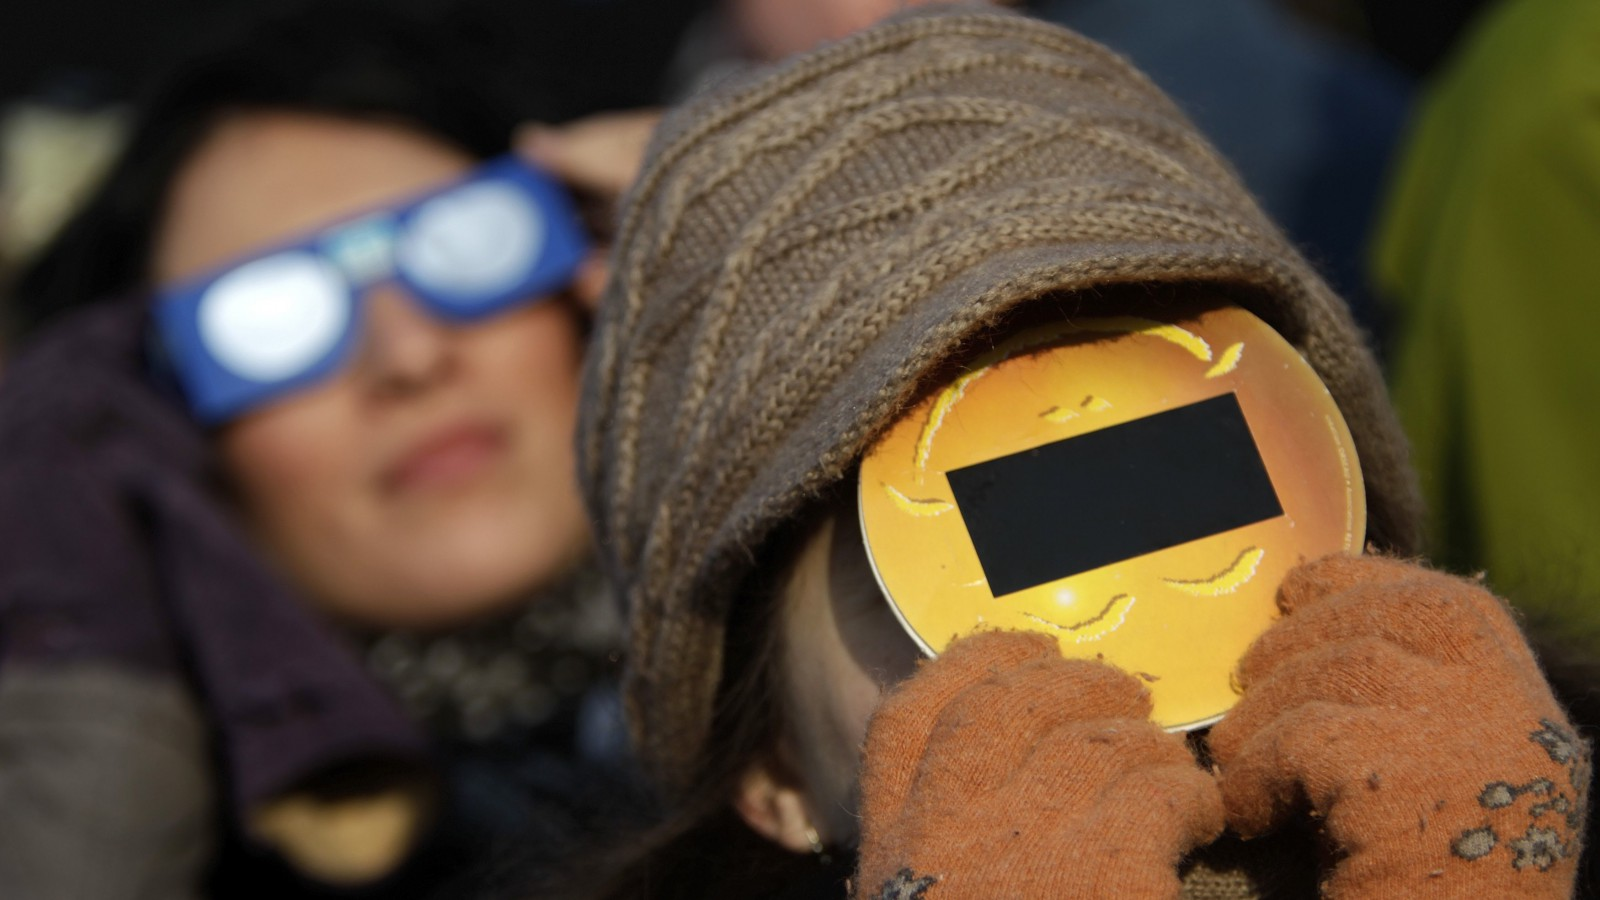 People wear protective eyewear as they look at a partial solar eclipse in Bucharest January 4, 2011. The partial eclipse will be visible near sunrise over most of Europe. REUTERS/Bogdan Cristel (ROMANIA - Tags: ENVIRONMENT) - RTXW746